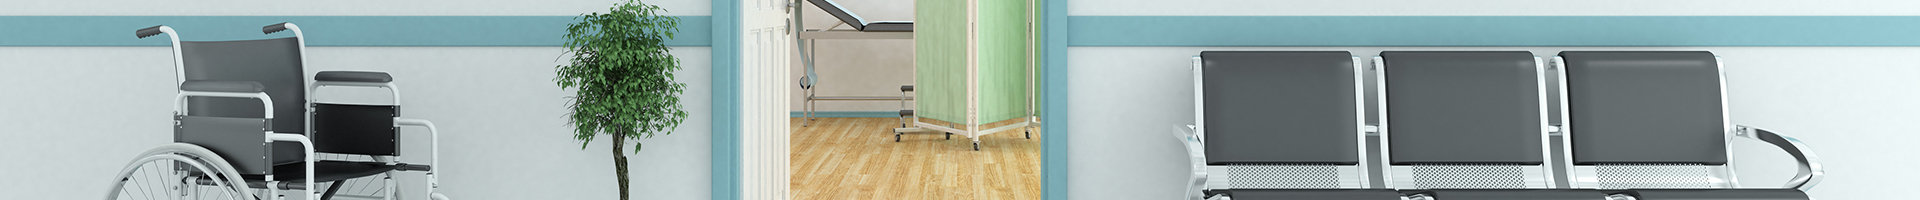 Medical Grade Commercial Cleaning Services